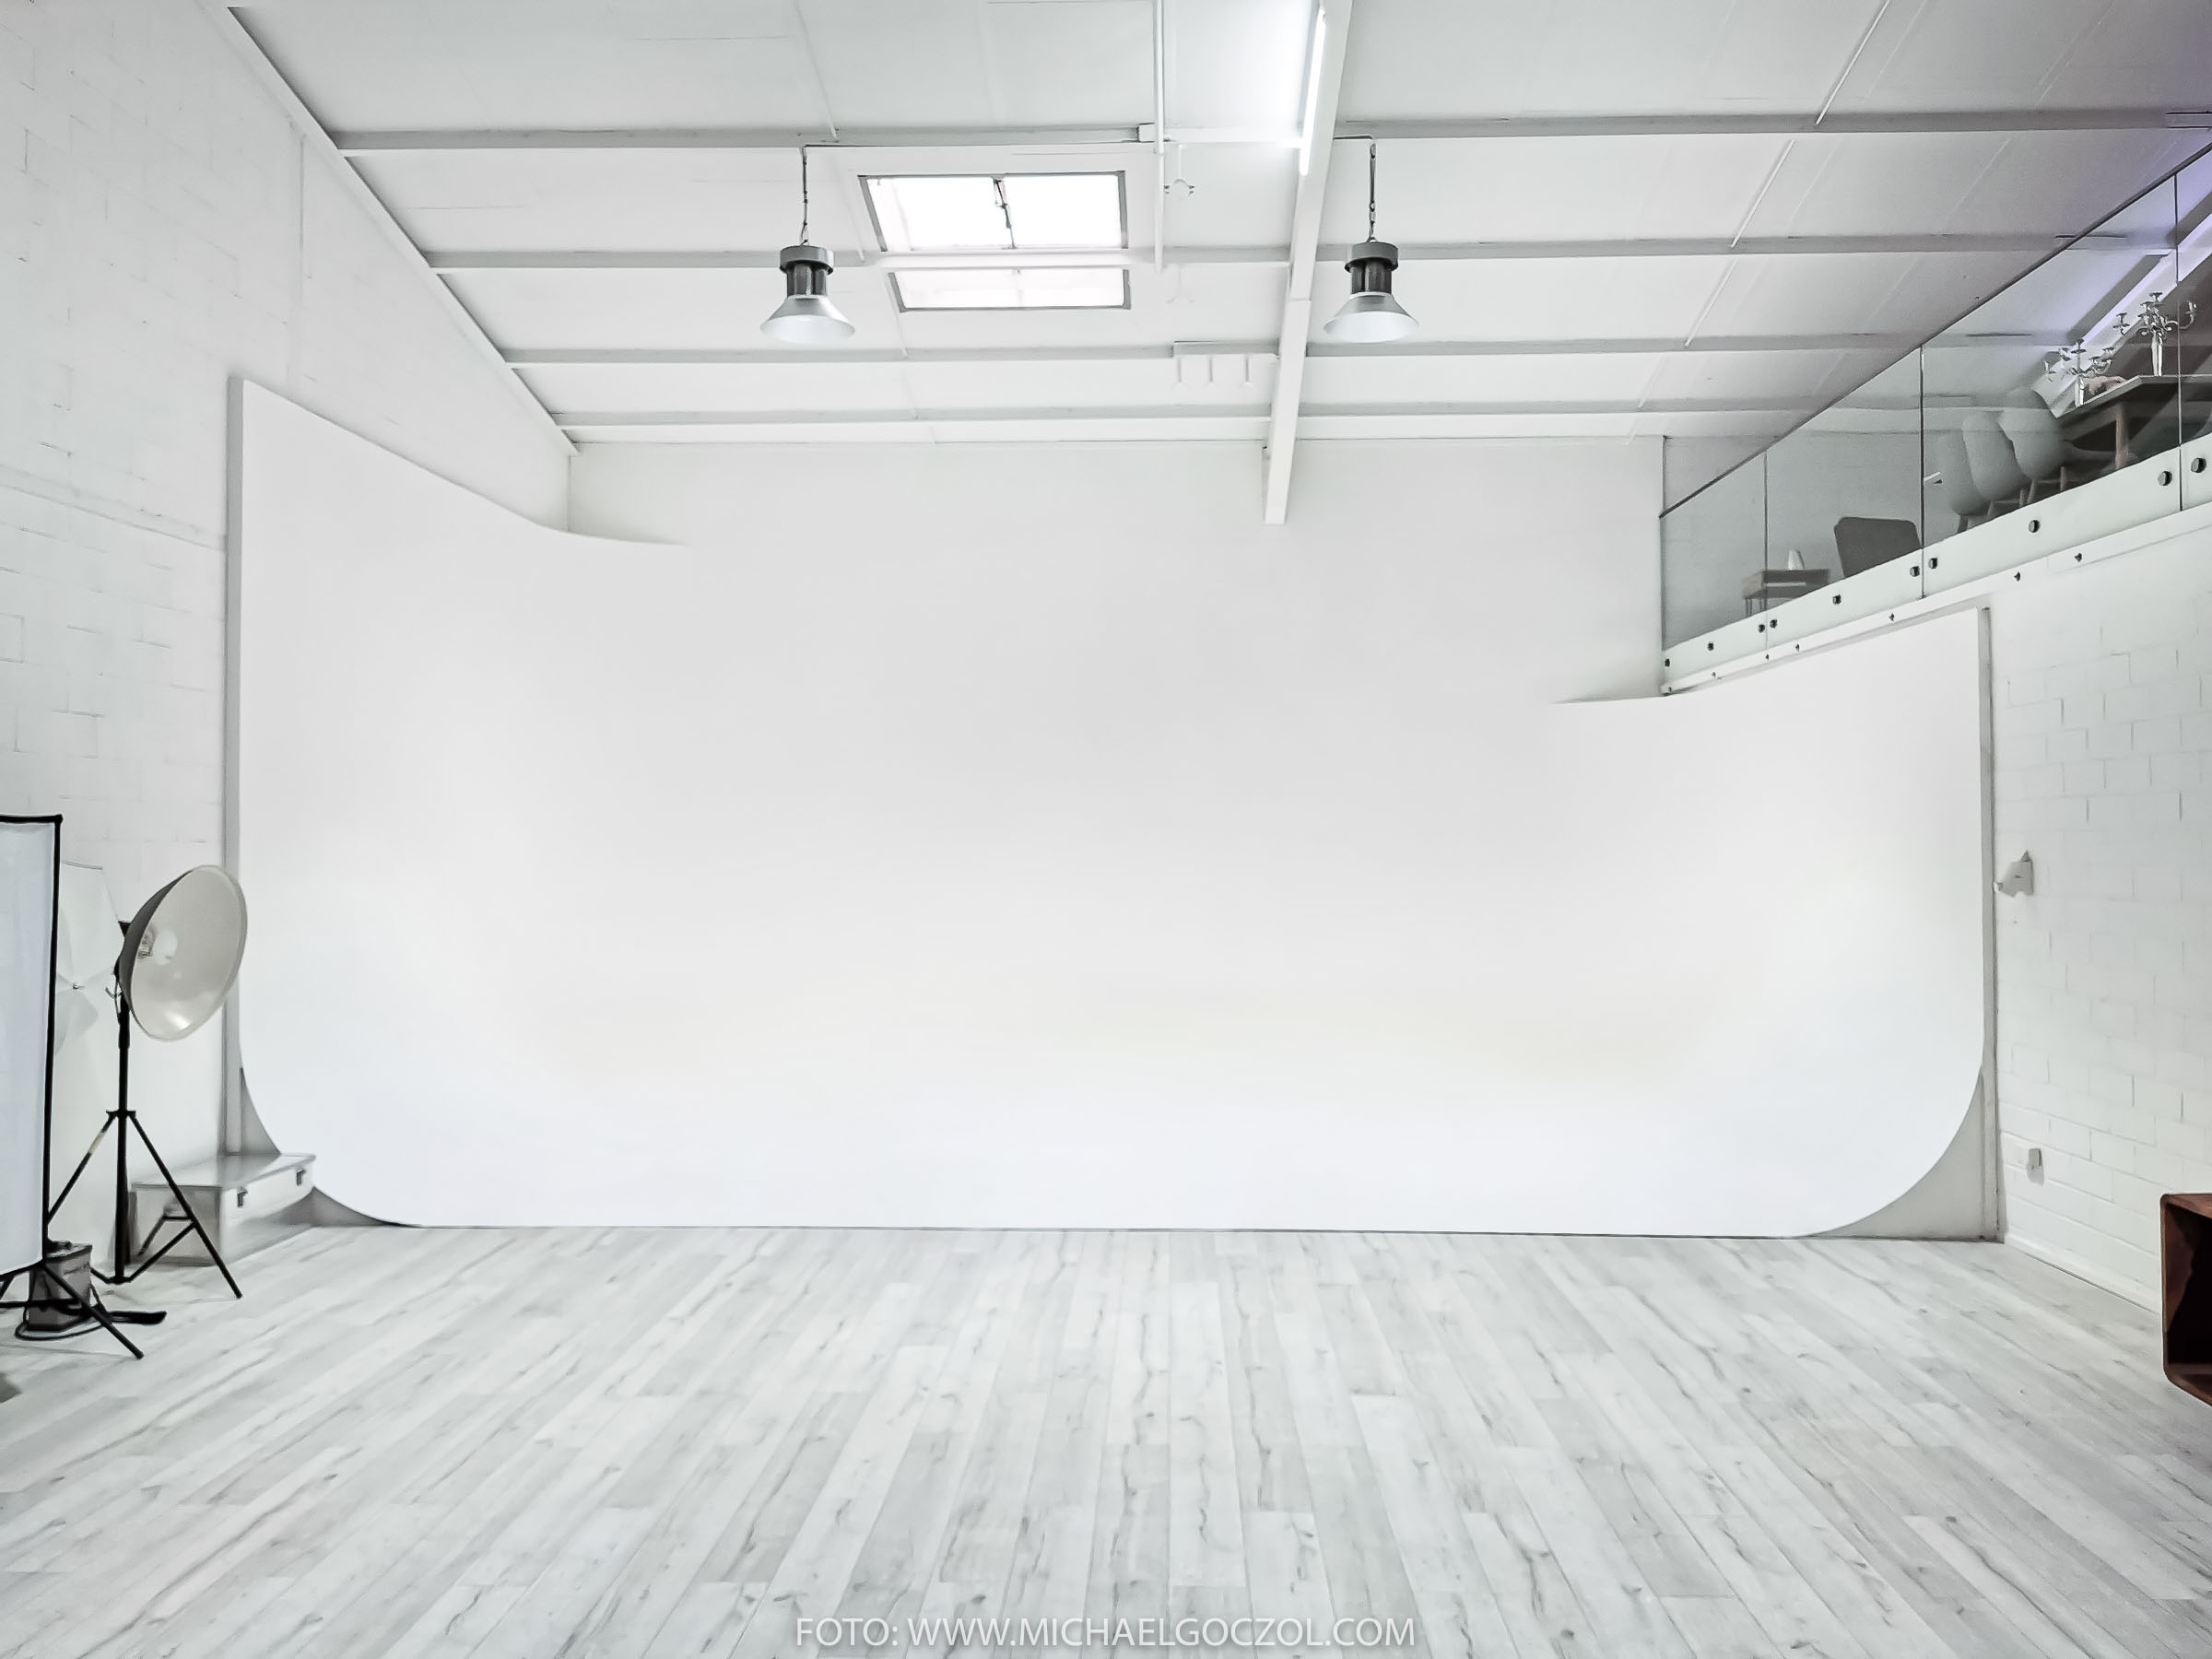 RoofOneStudio Mietstudio Fotostudio Eventlocation Loft Industrieloft Studio Frankfurt am main Oberursel 1